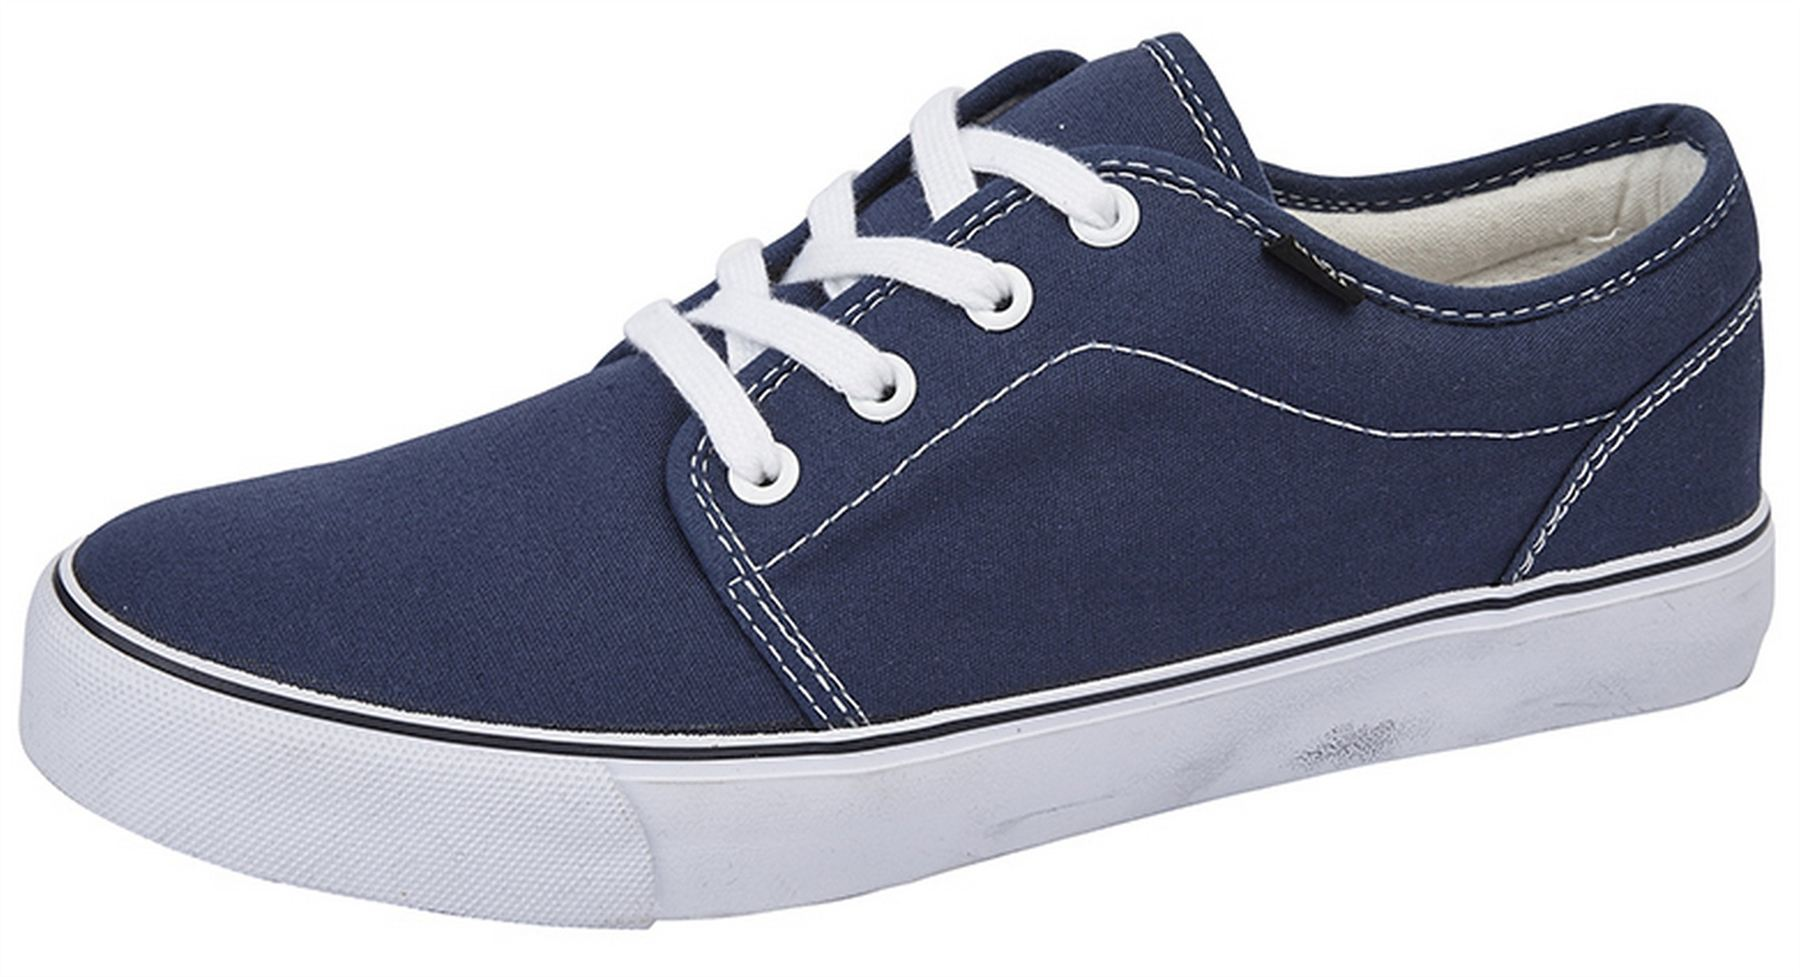 Mens Canvas Trainers Boxed Slip On Smart Casual Padded Collar Deck Shoes Size